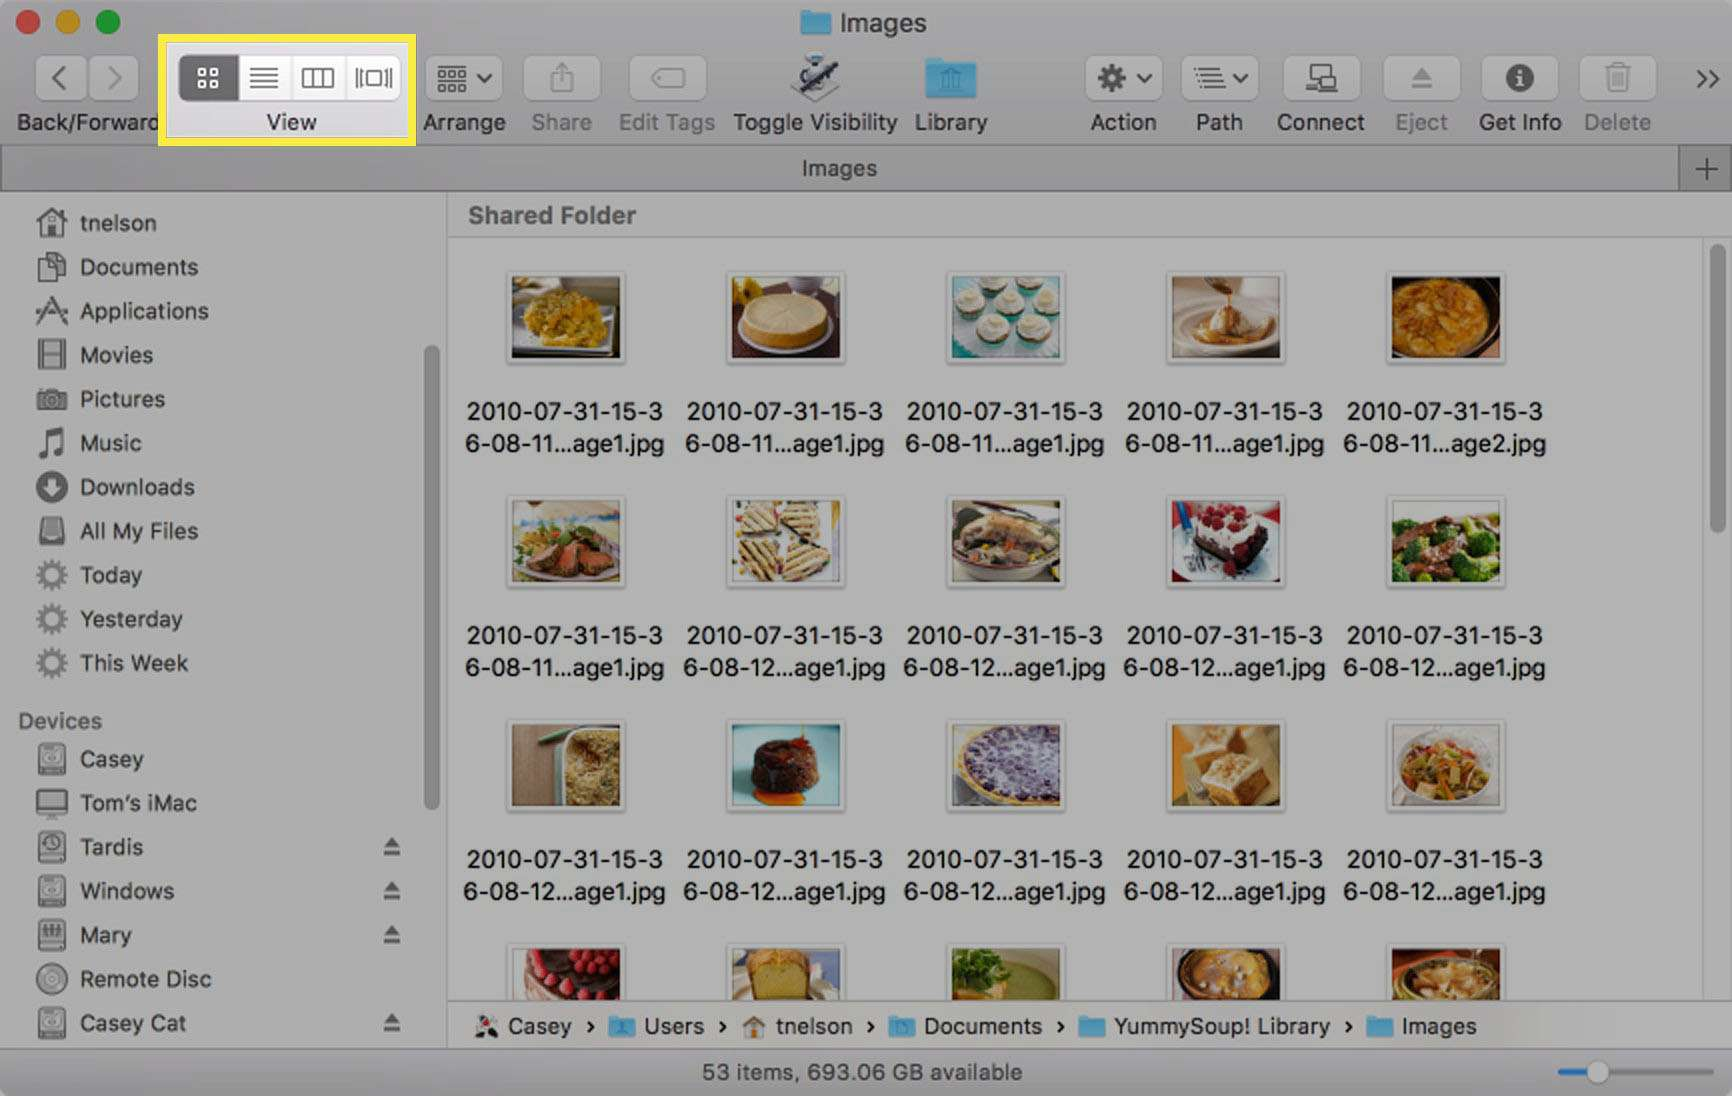 Finder views are selected by four buttons in the toolbar